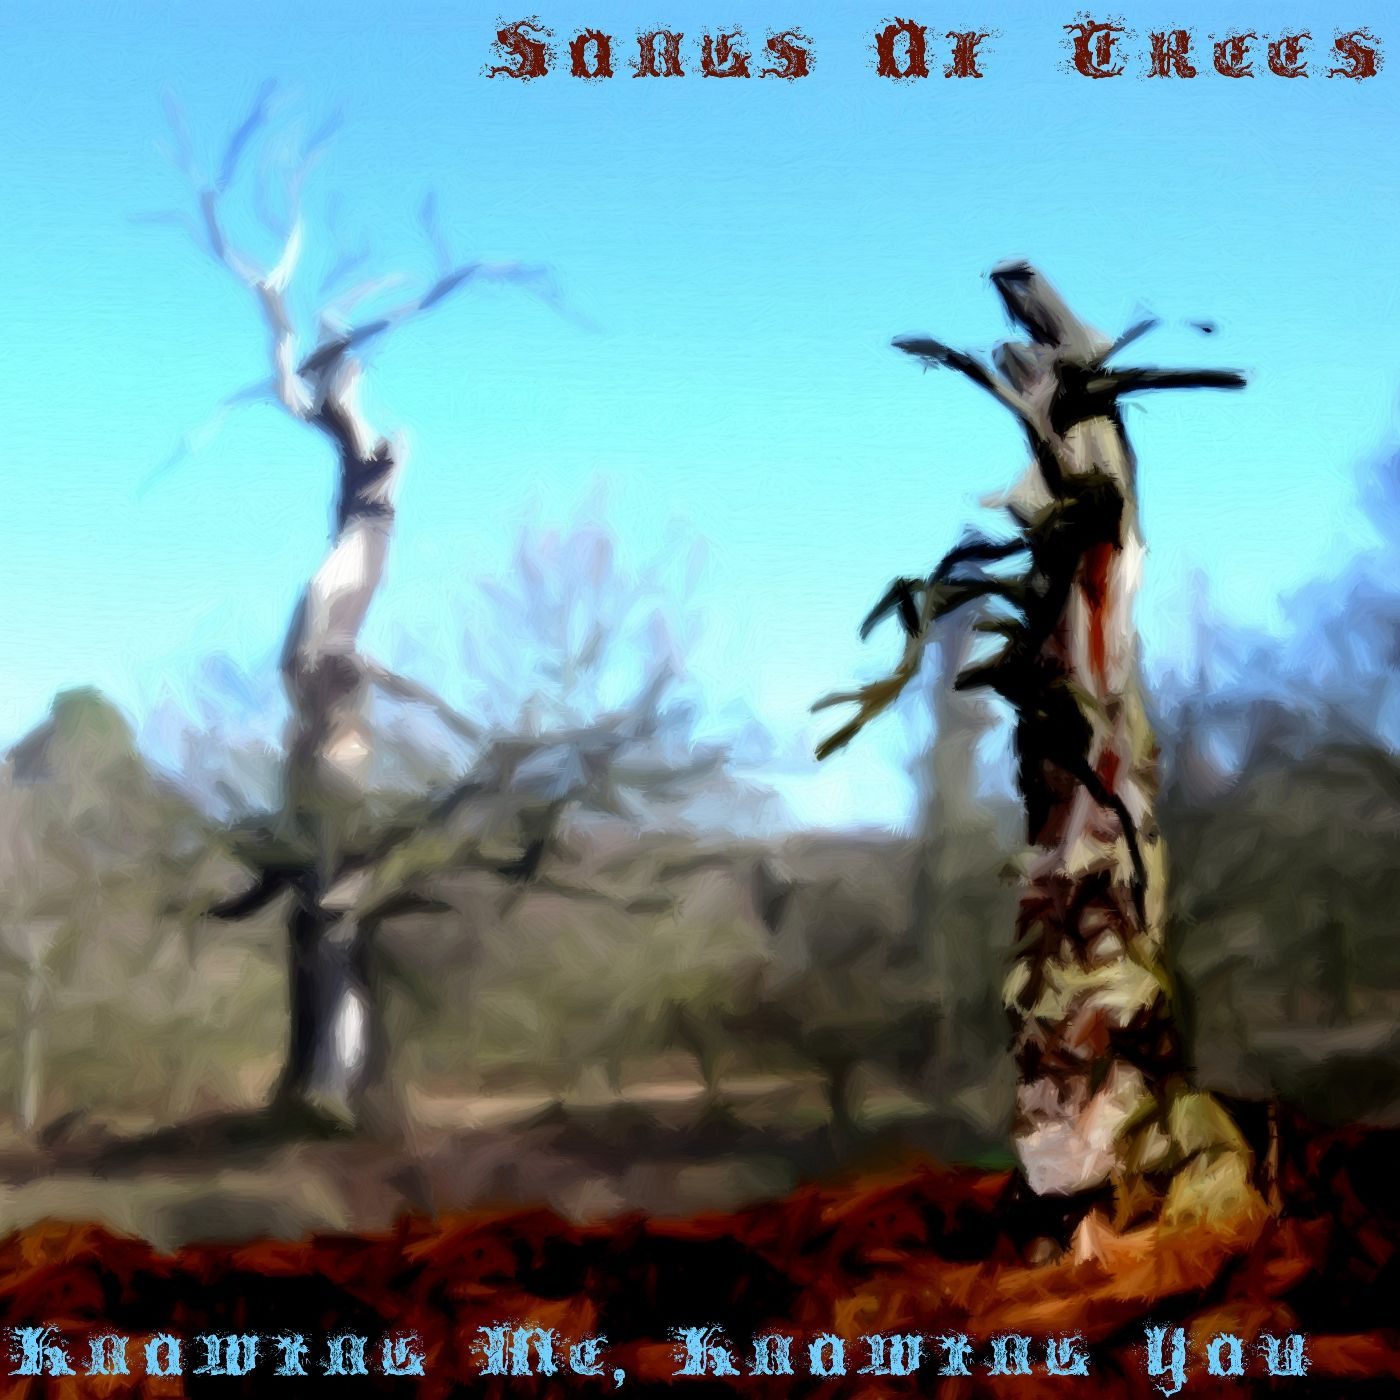 Knowing Me, Knowing You, cover ABBA par Songs of Trees